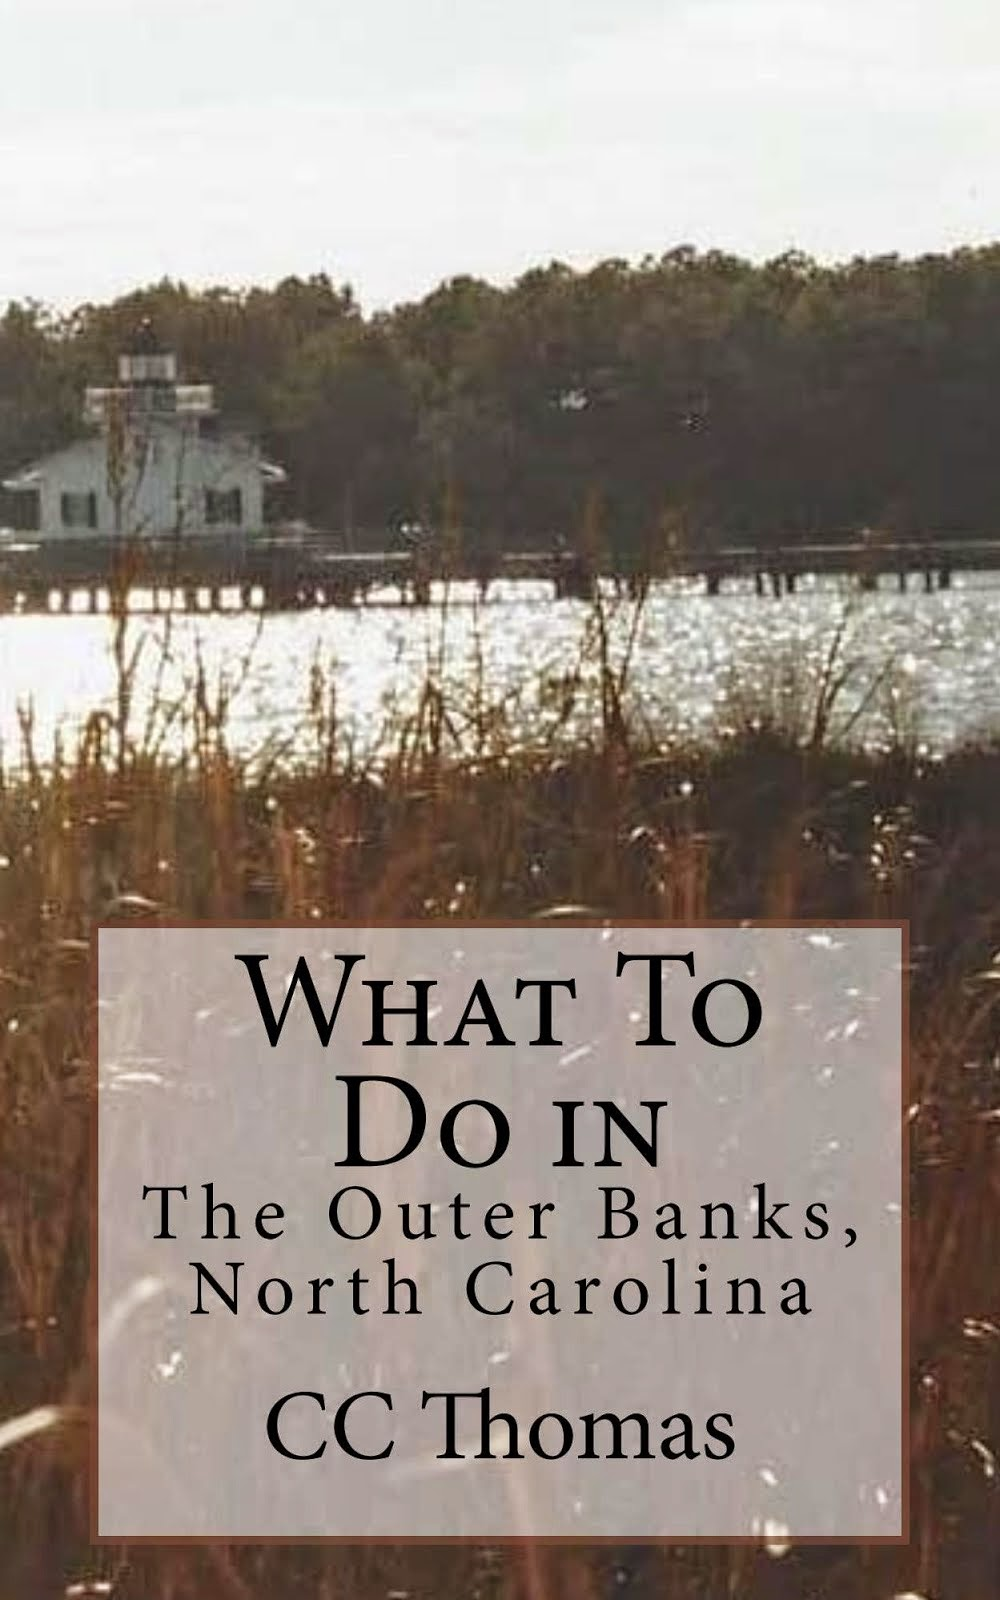 What To Do In...The Outer Banks, North Carolina